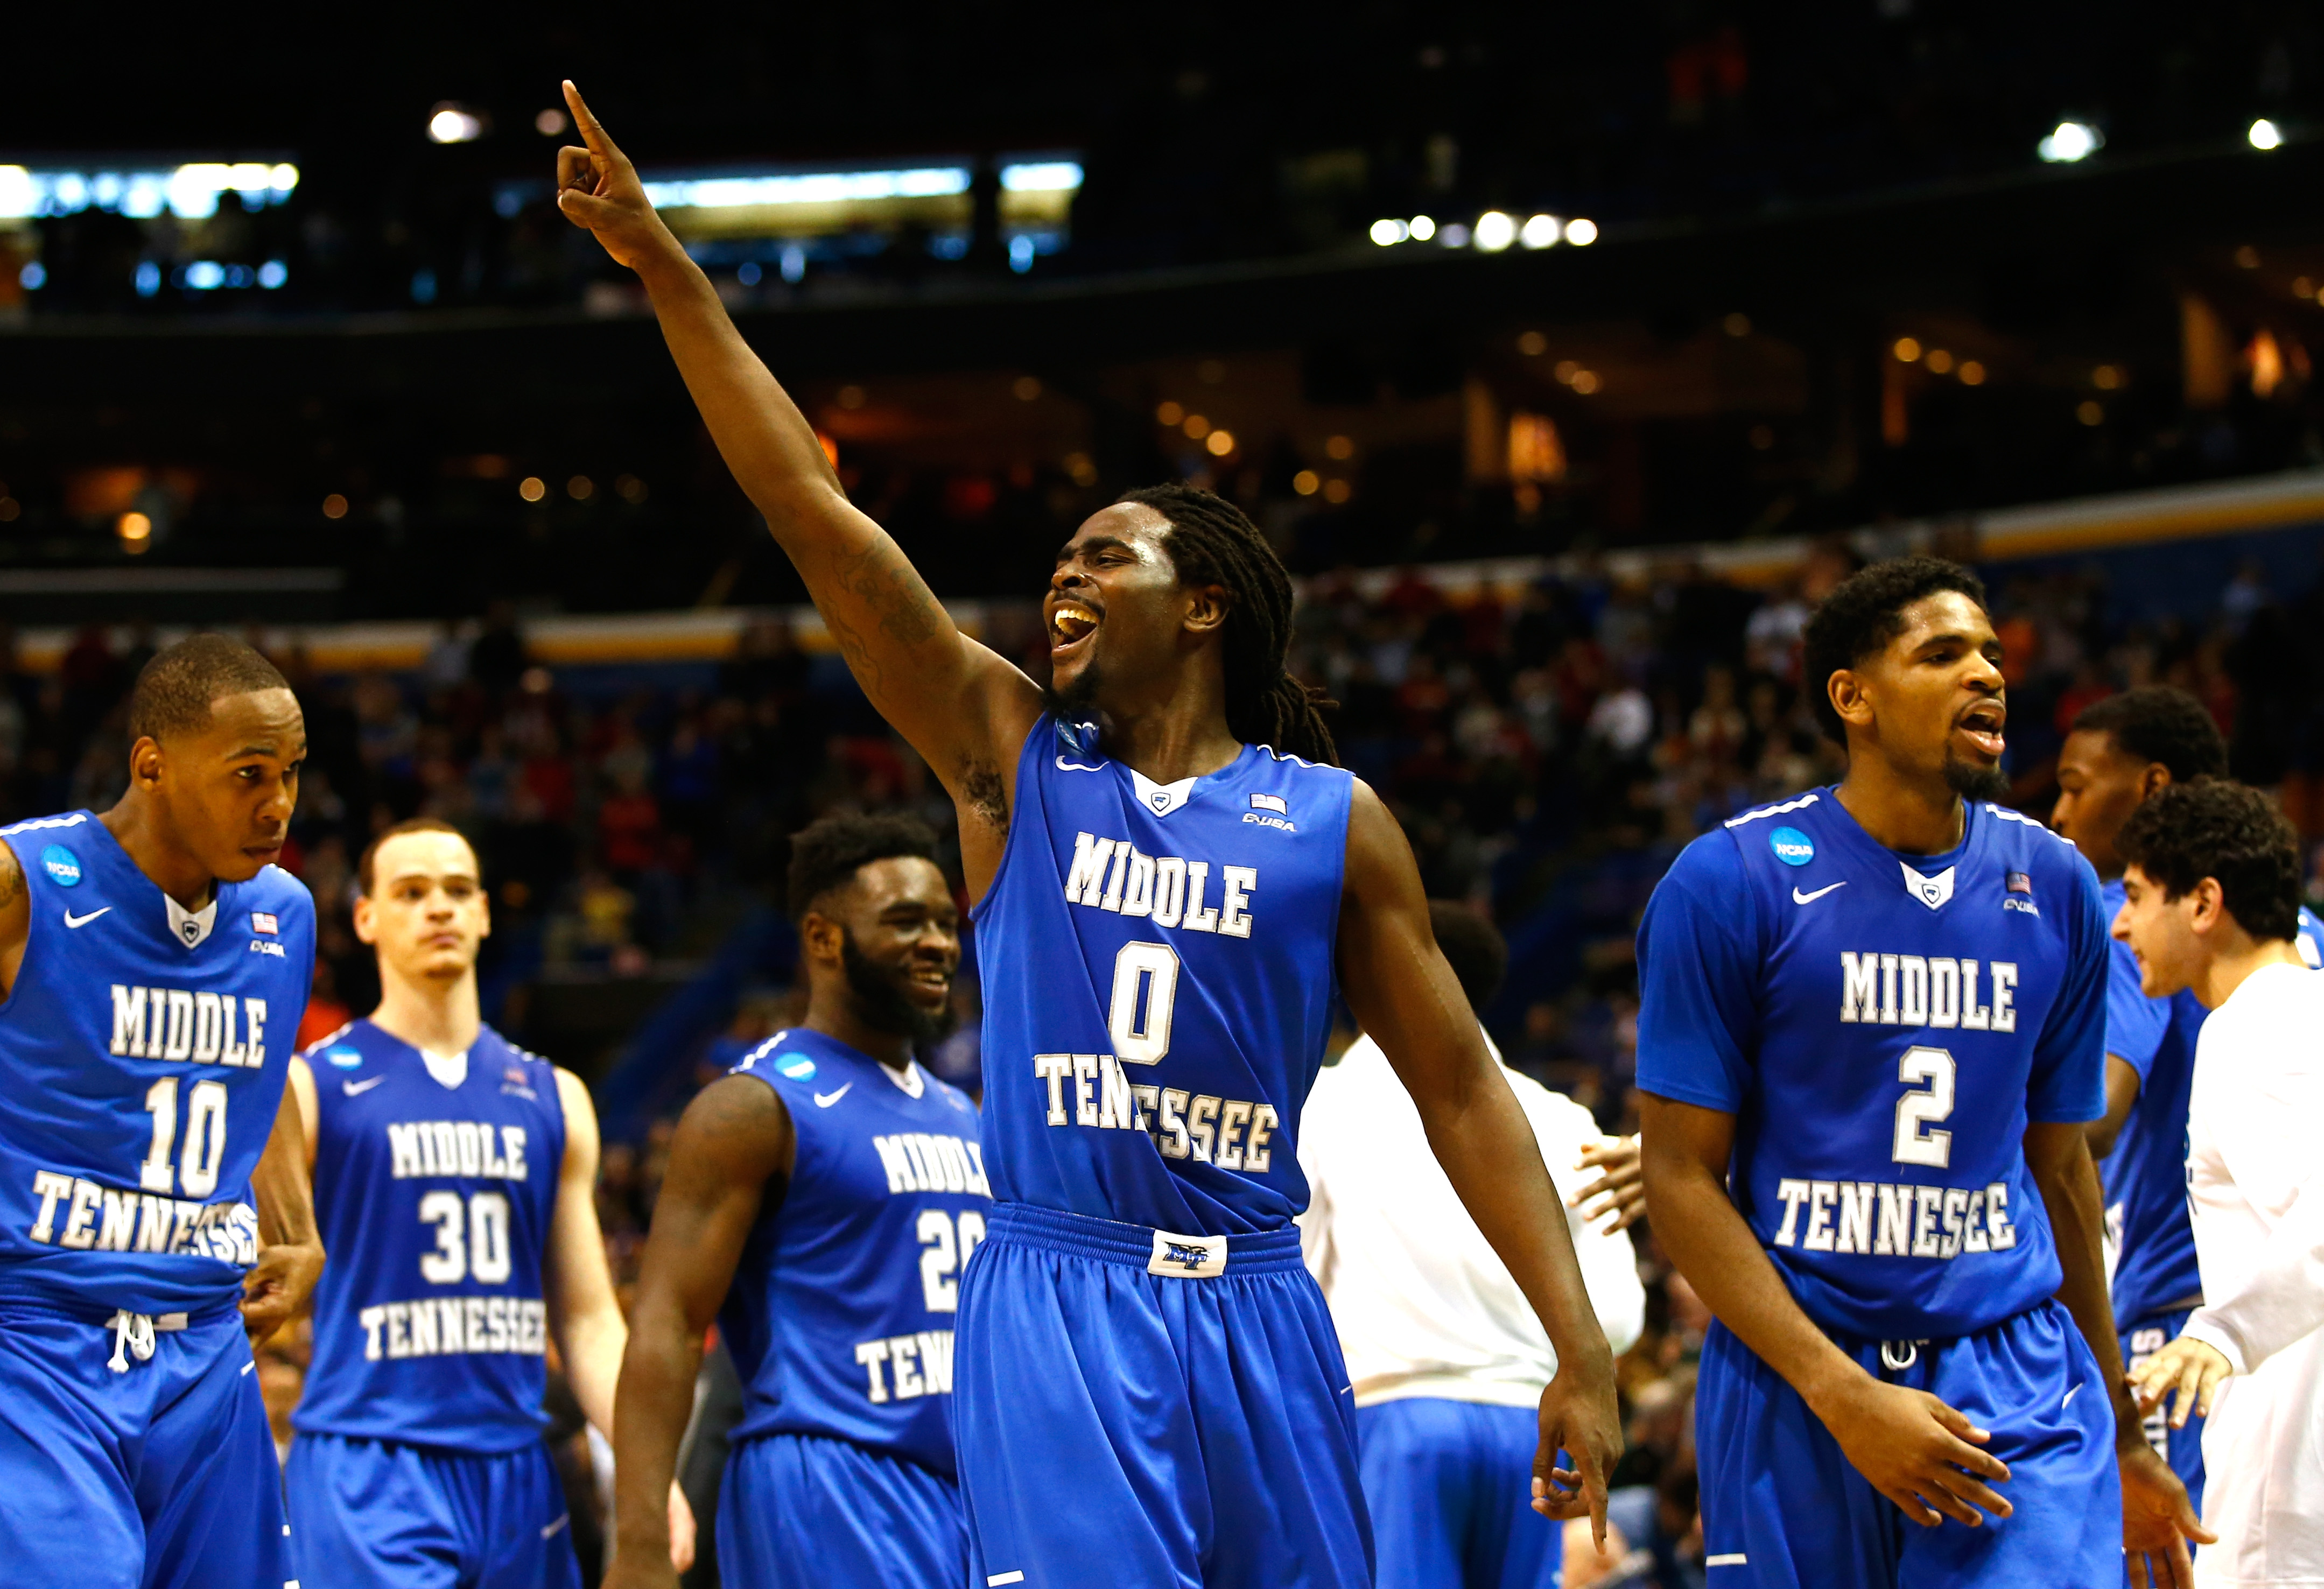 ST LOUIS, MO - MARCH 18: Darnell Harris #0 of the Middle Tennessee Blue Raiders celebrates late in the game against the Michigan State Spartans during the first round of the 2016 NCAA Men's Basketball Tournament at Scottrade Center on March 18, 2016 in St Louis, Missouri. (Photo by Jamie Squire/Getty Images)